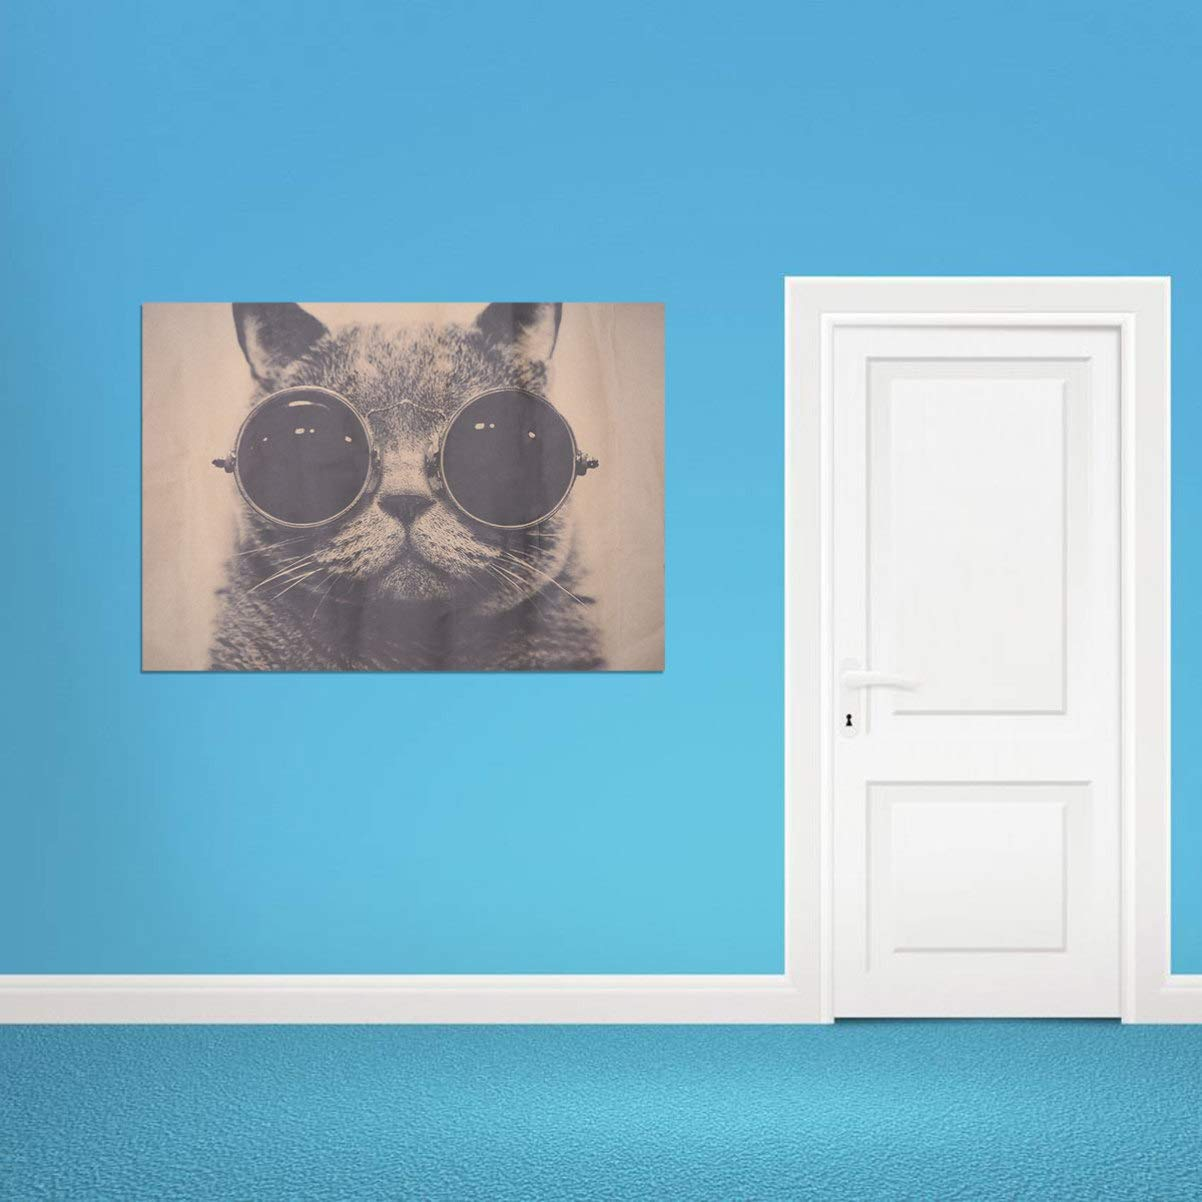 Garneck Kraft Paper Cool Cat Poster Creative Retro Rock Animal Poster Wall Sticker Decorative Painting Wall Poster Decal for Living Room Bedroom Home Decor 51.5 x 36cm